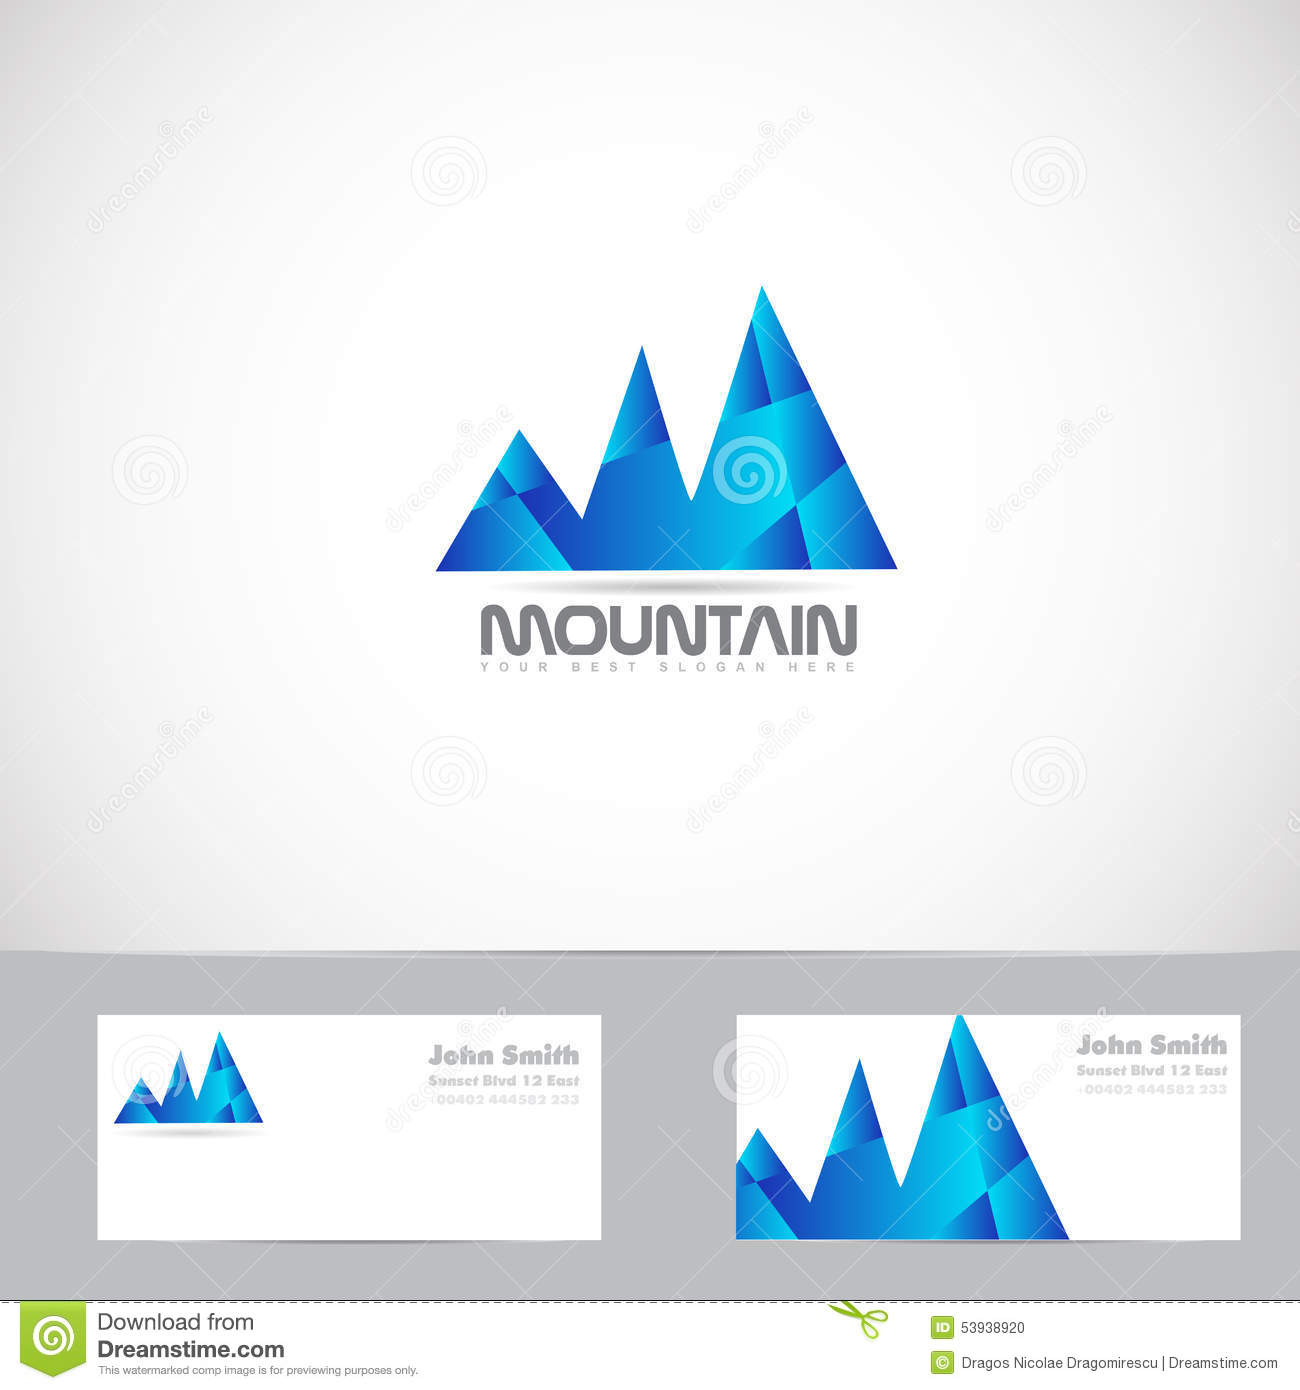 Vector logo template of blue mountain shape 3d with business card.